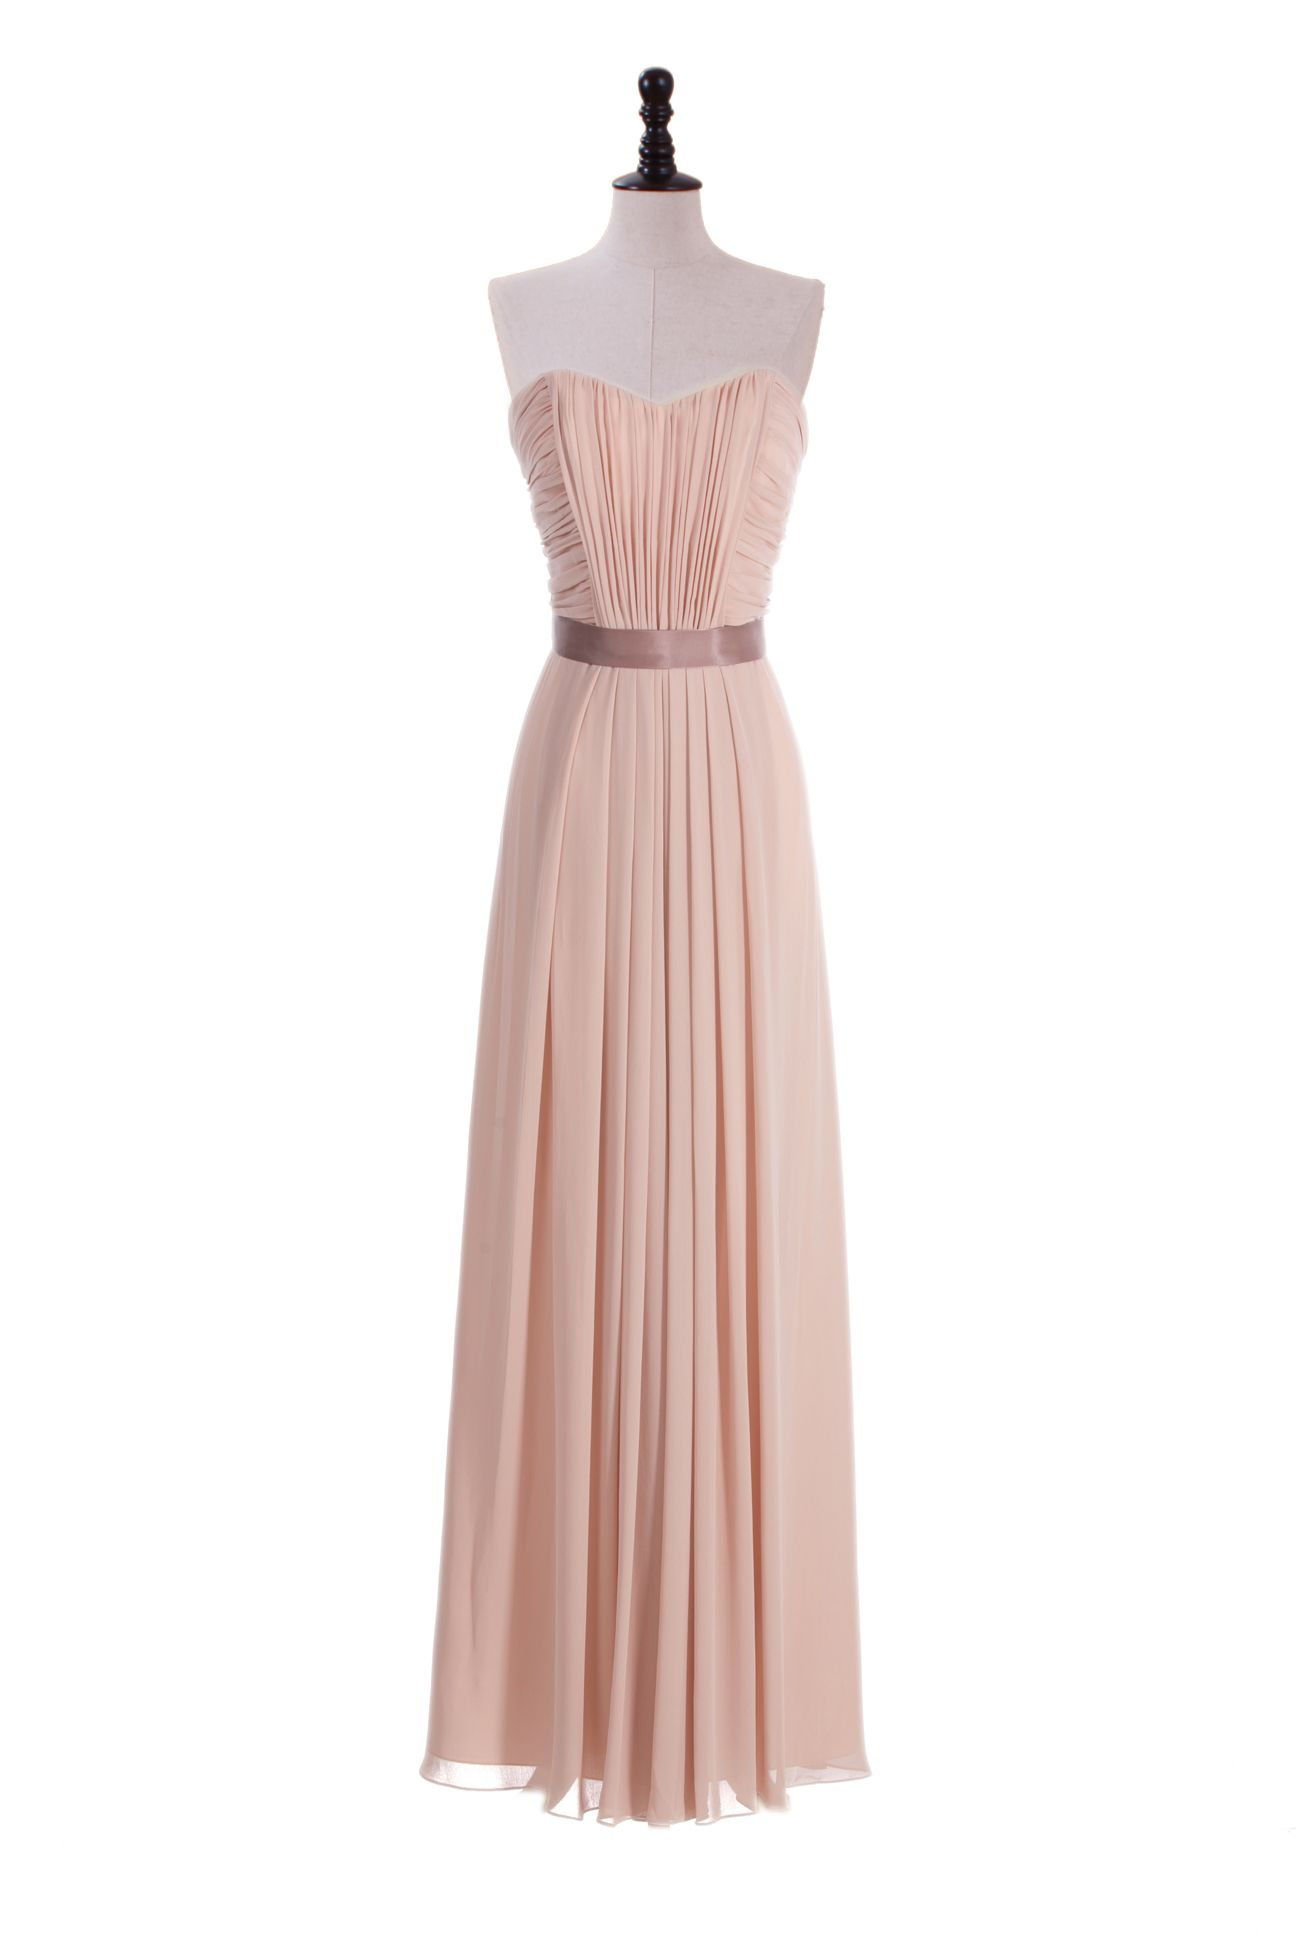 Crinkle Chiffon Shirred Dress with Ribbon Sash | Fashion | Pinterest ...